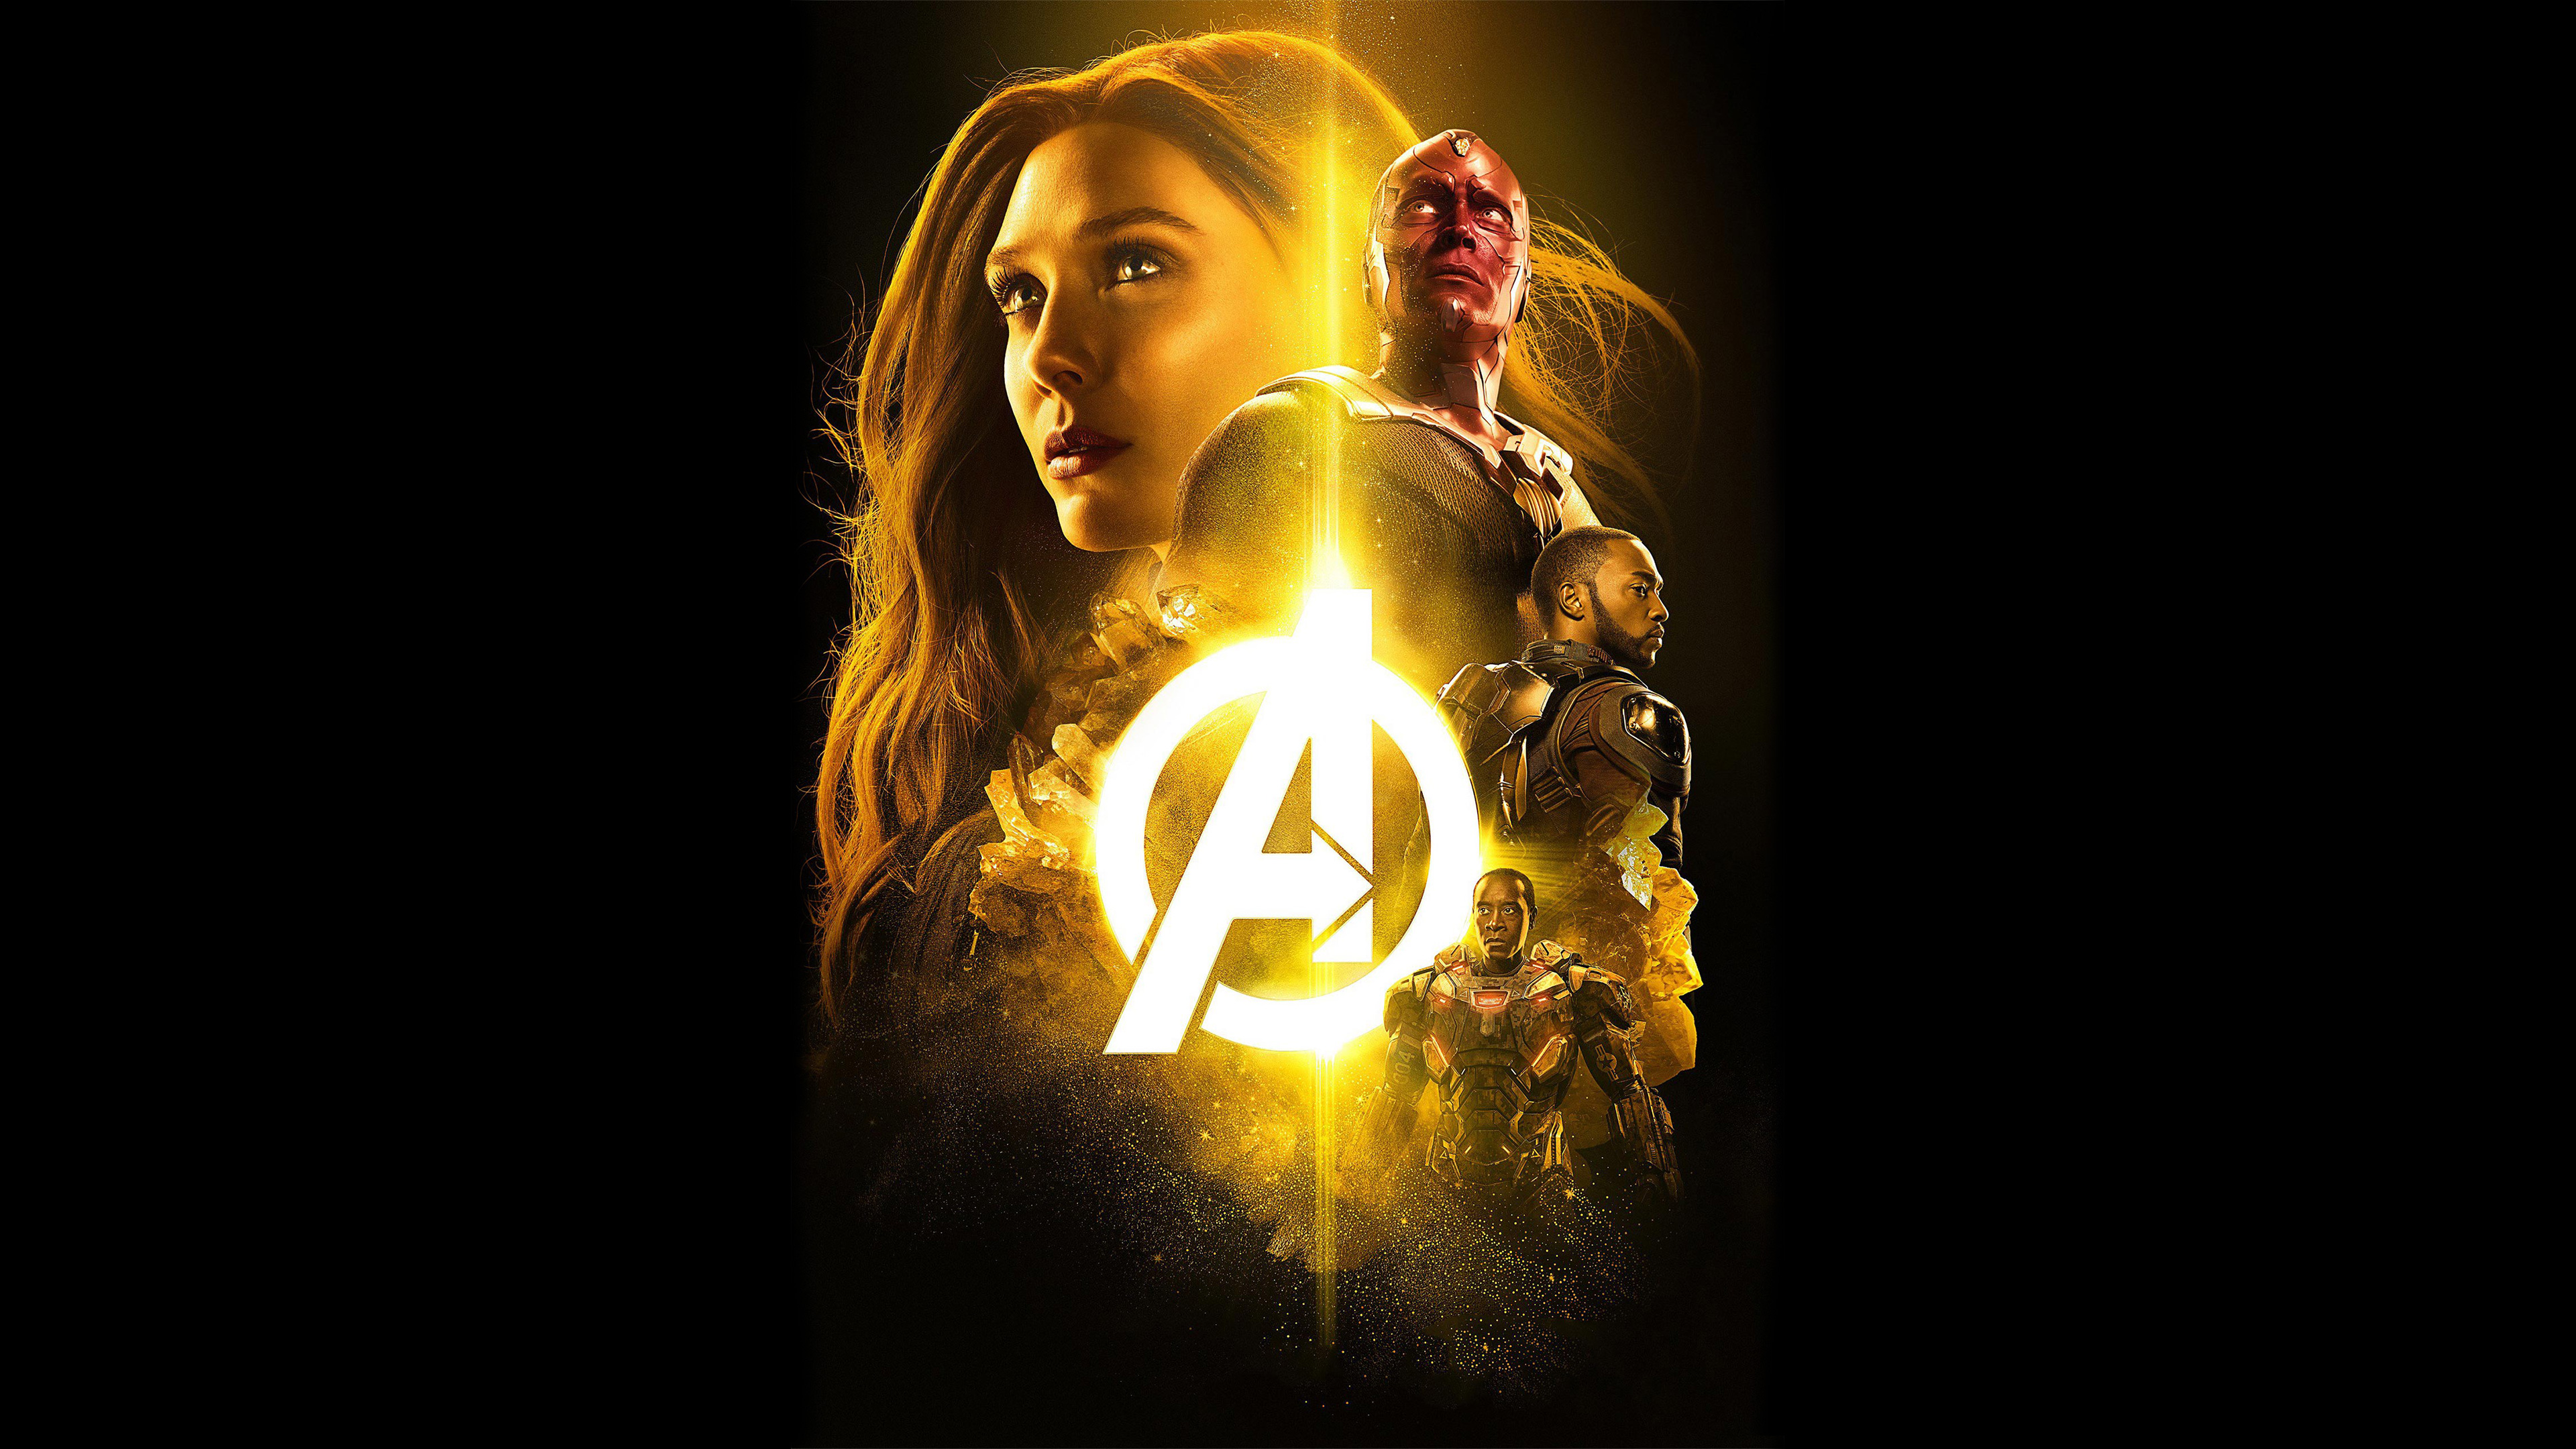 Hd Wallpapers Brands Logos Avengers Infinity War War Machine Vision Scarlet Witch